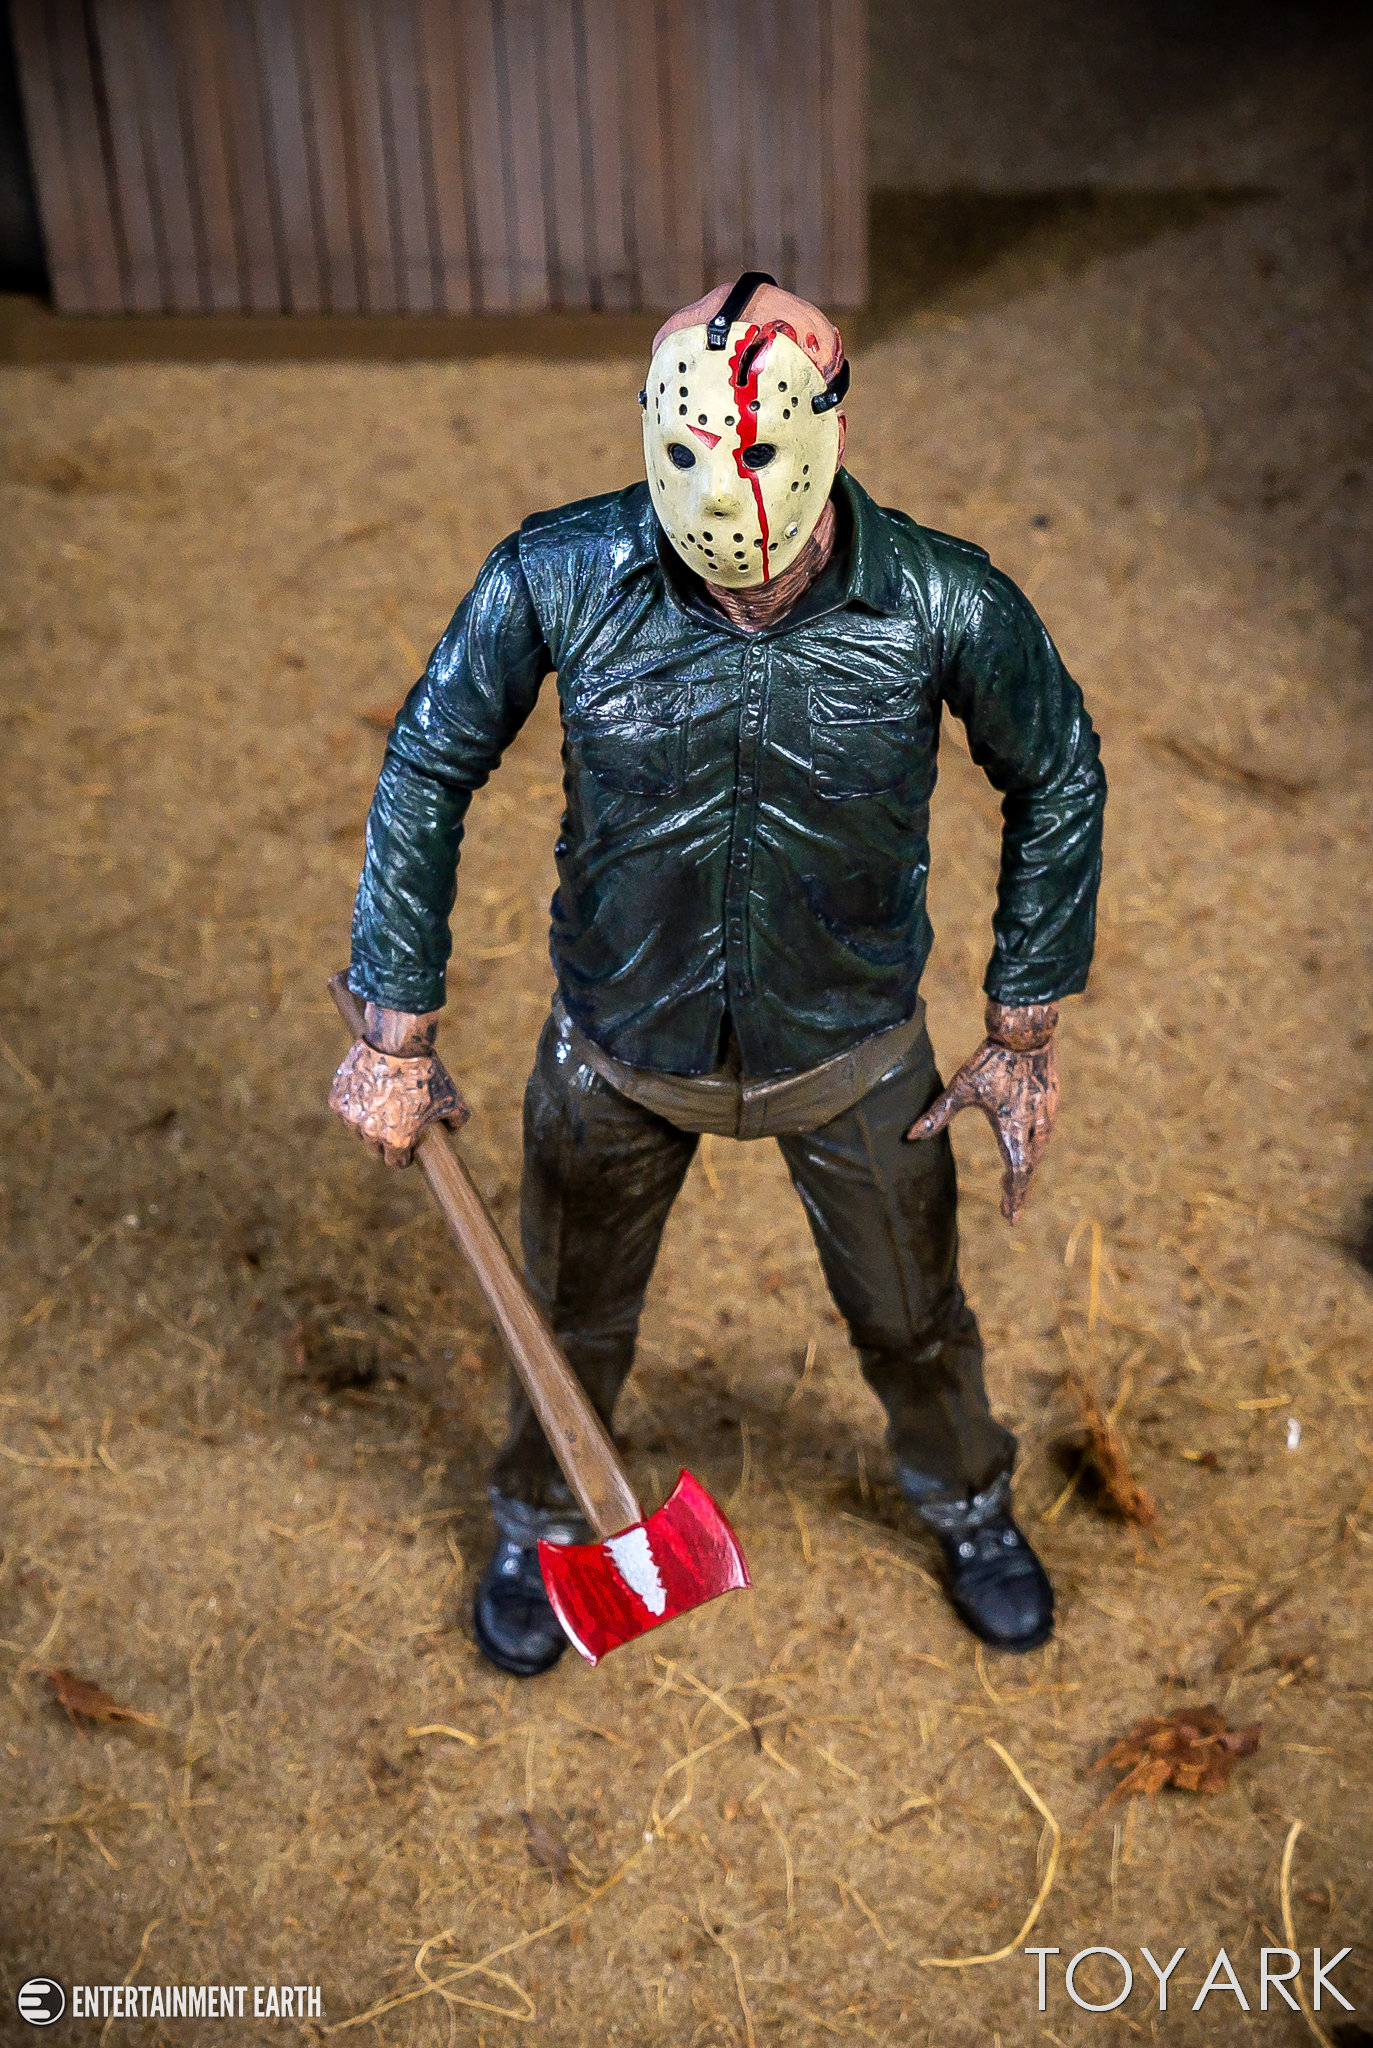 https://news.toyark.com/wp-content/uploads/sites/4/2018/10/NECA-Ultimate-Dream-Jason-034.jpg